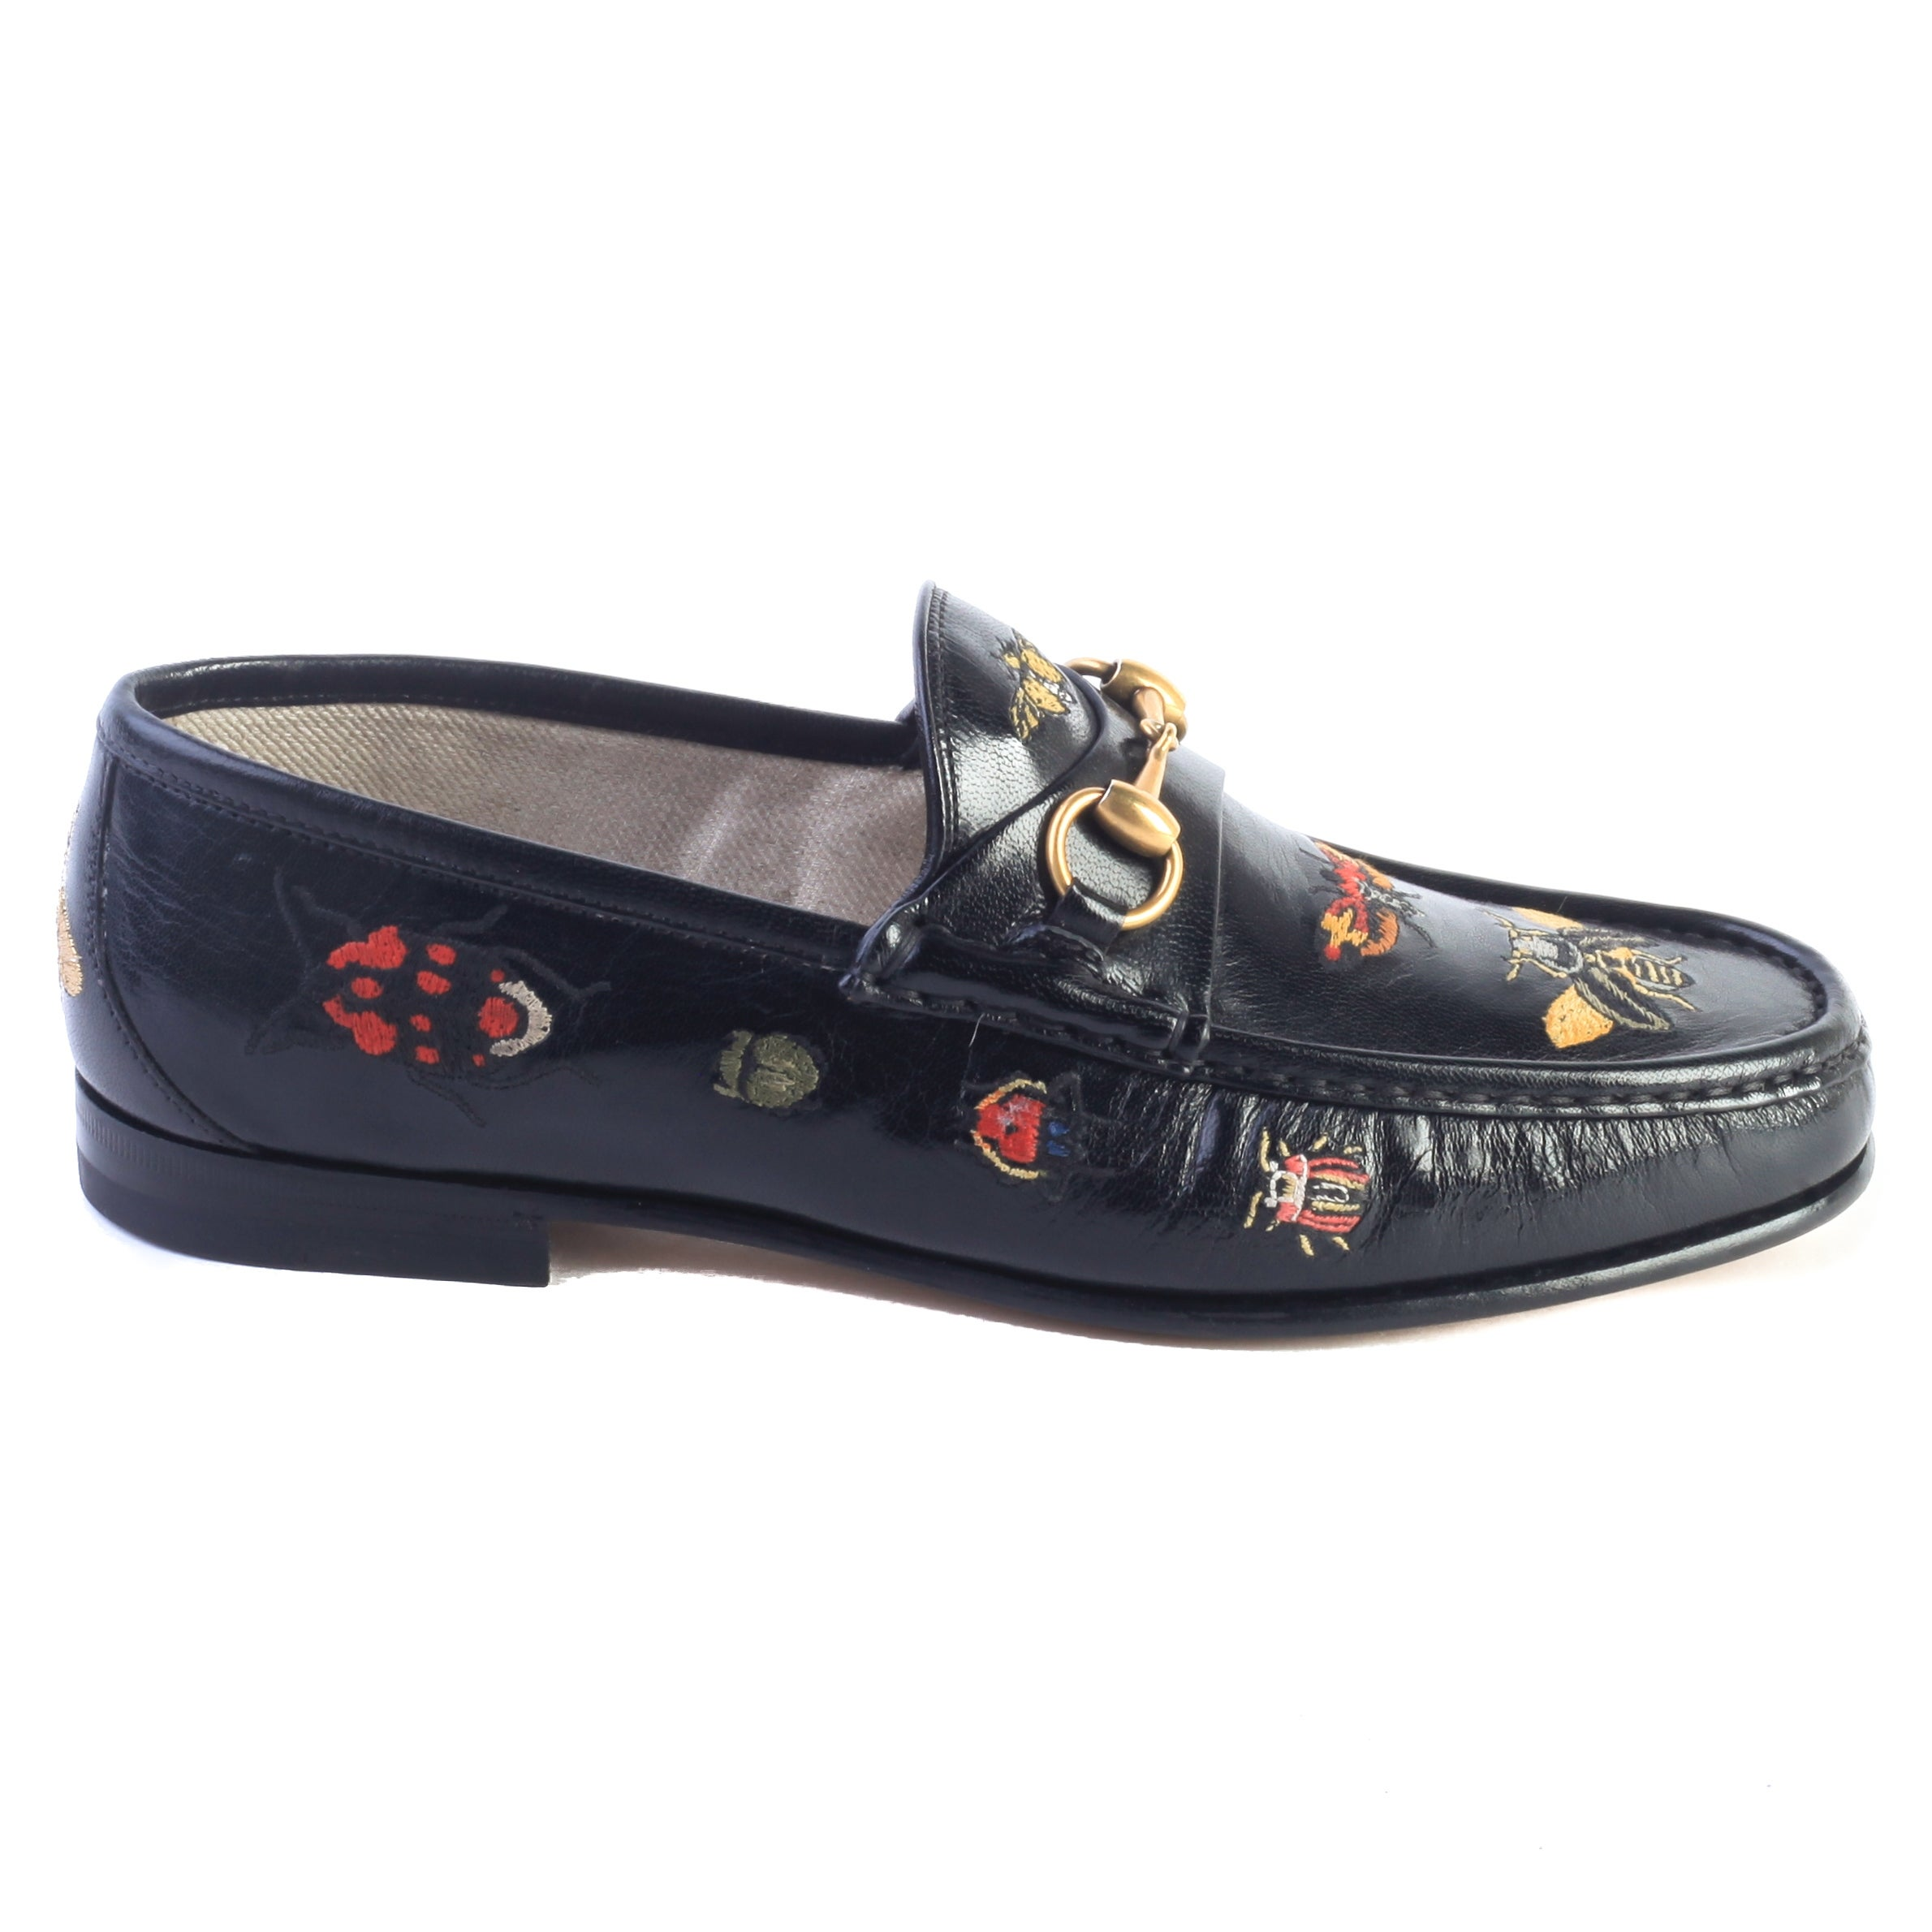 24cde438c3b Shop Gucci Men s Embroidered Horsebit Leather Loafer Black Shoes - Free  Shipping Today - Overstock - 23533822